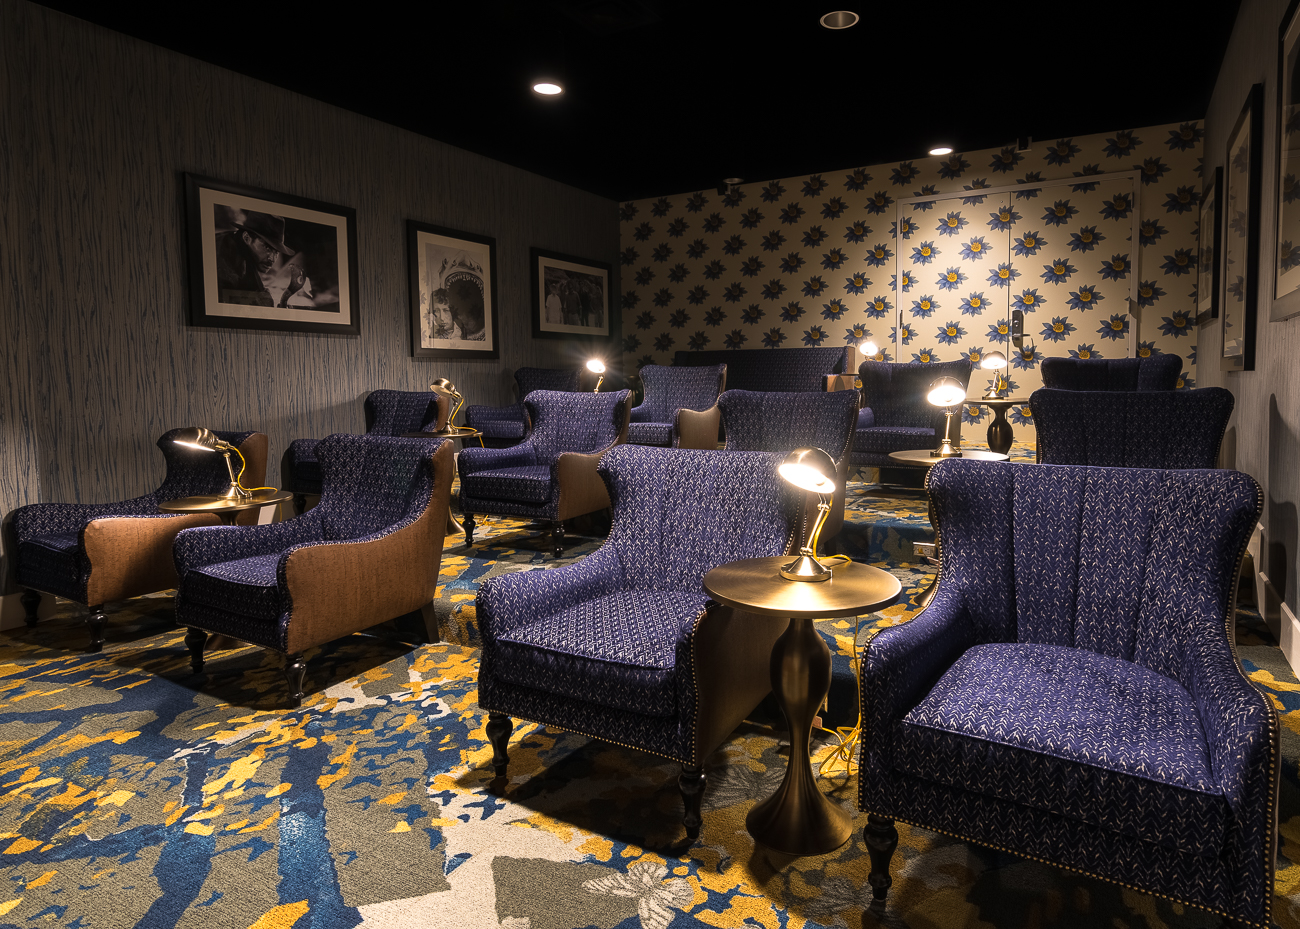 The theater room allows residents to retreat to a windowless room to watch movies on the big screen in comfortable chairs. / Image: Phil Armstrong, Cincinnati Refined // Published: 11.13.18